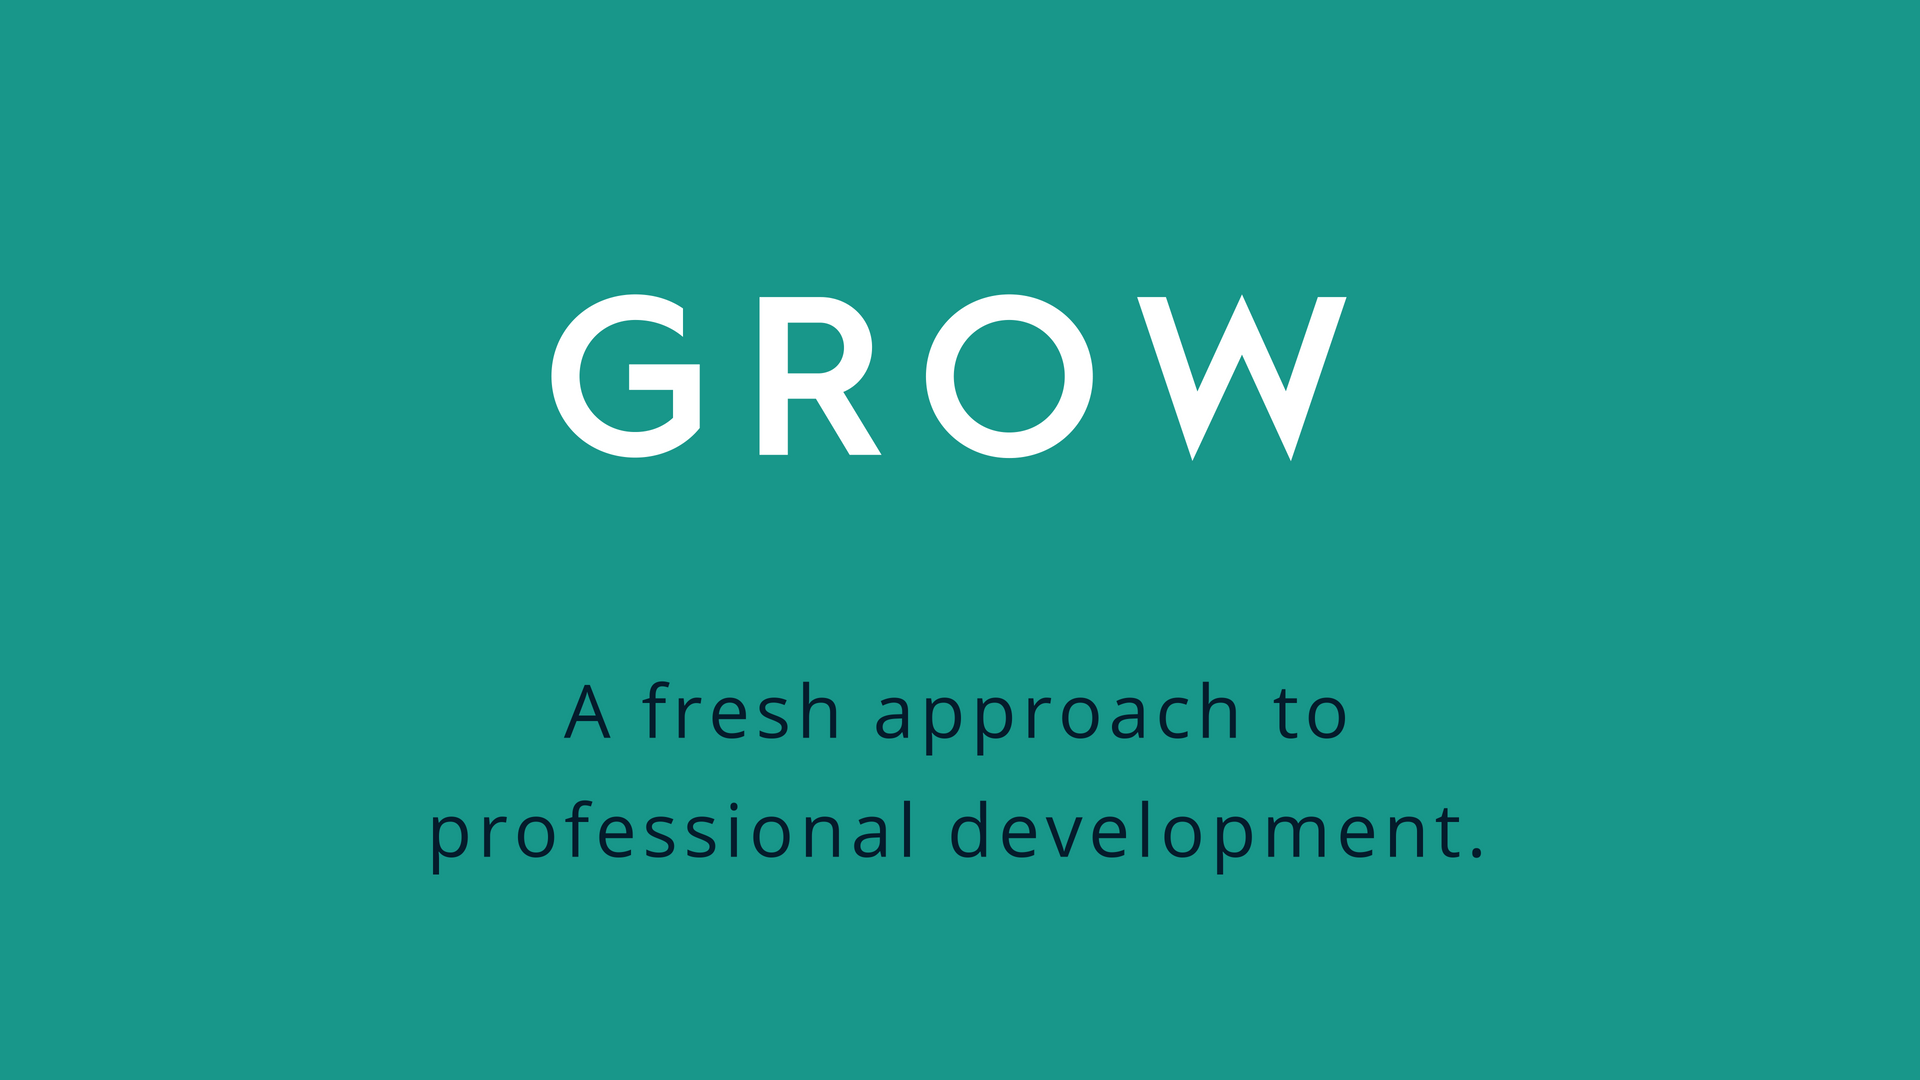 GROW: Professional Development (Q4)